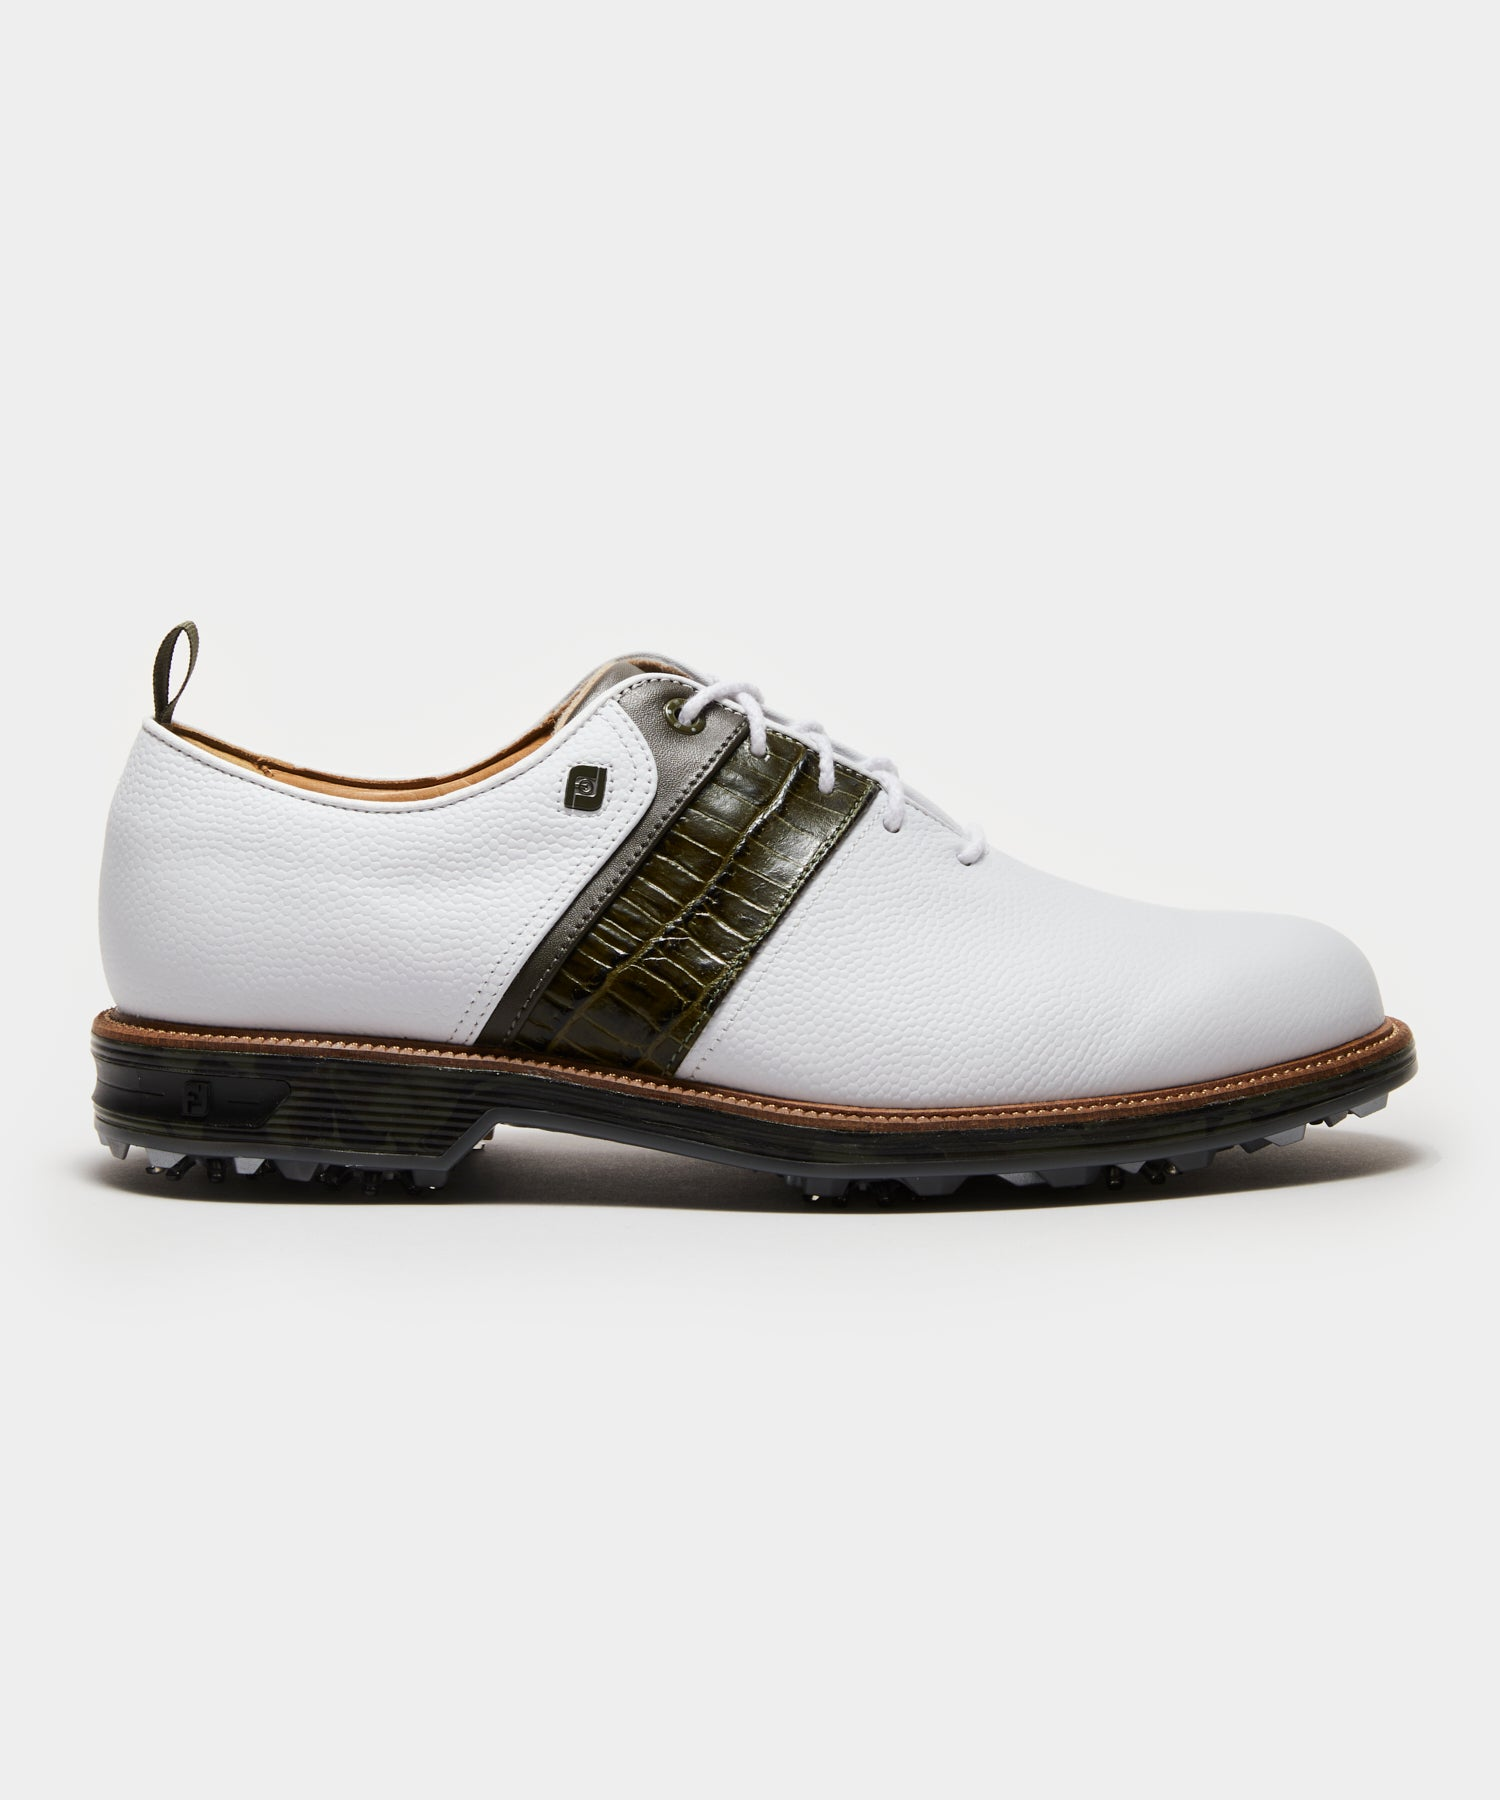 Footjoy x Todd Snyder Packard Golf Shoe in White/Olive